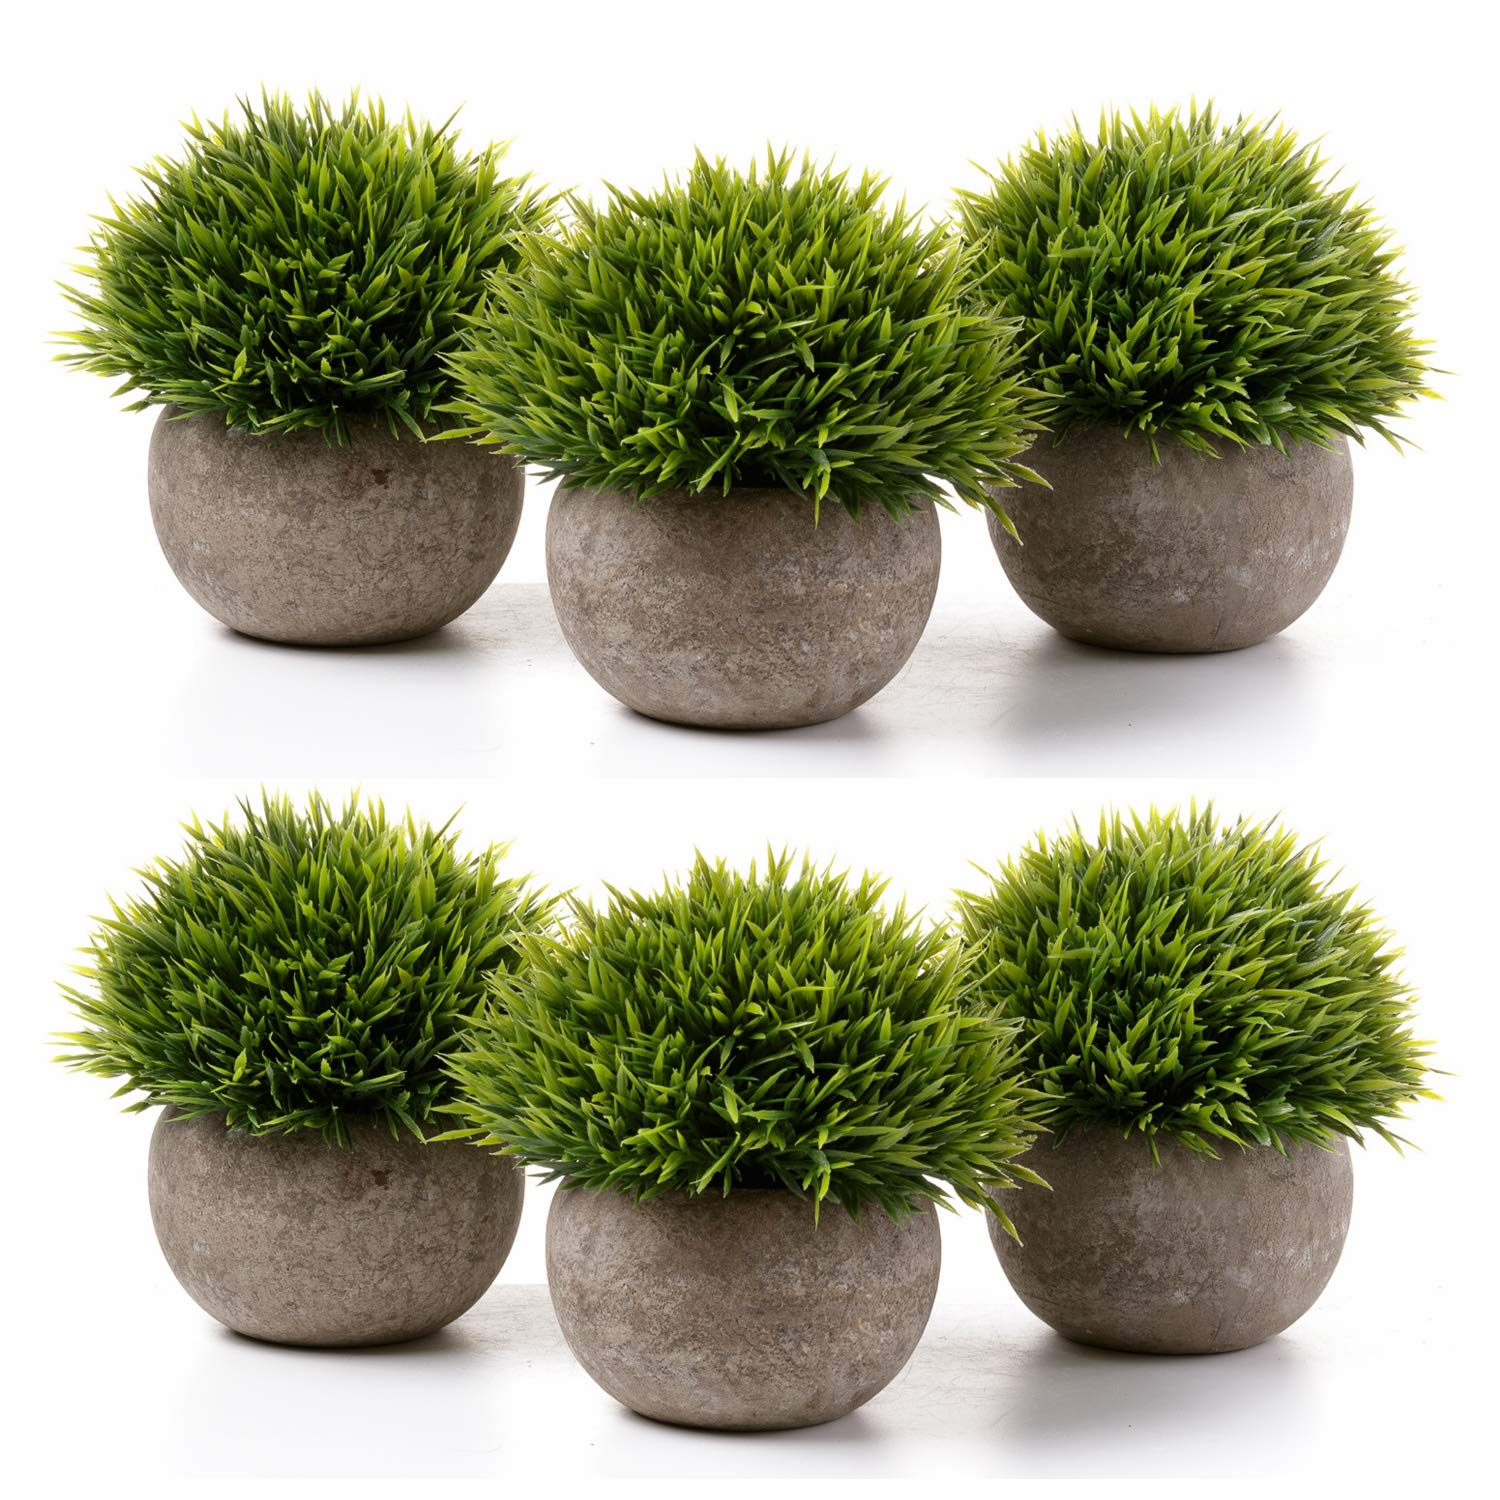 T4U Fake Artificial Potted Grass Plants - Small Green Pack of 6, Home and Office Decoration Desktop Windowsill Bonsai Indoor Gift for Wedding Birthday Christmas